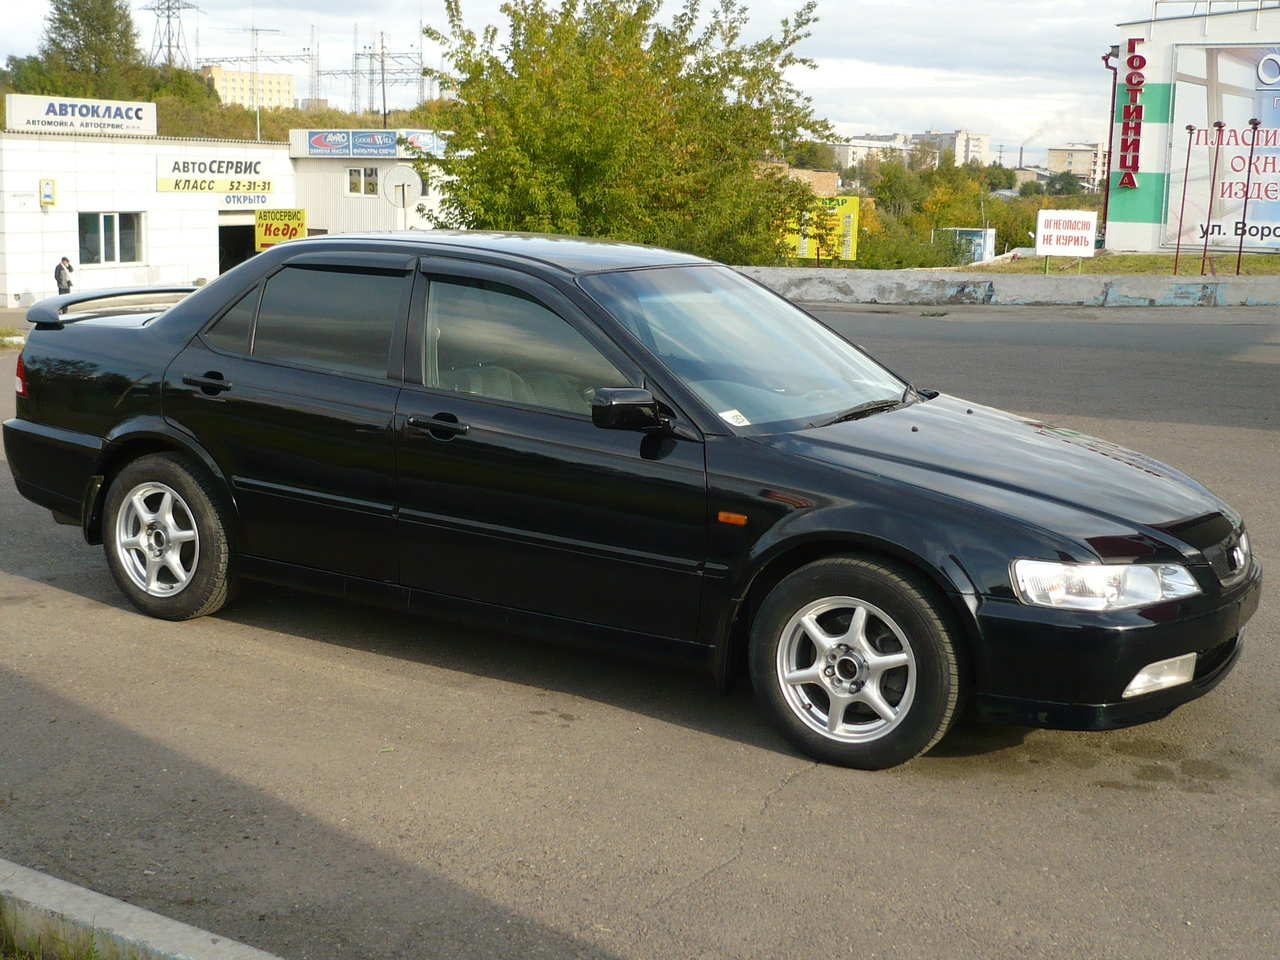 used 2000 honda accord photos 2000cc gasoline ff